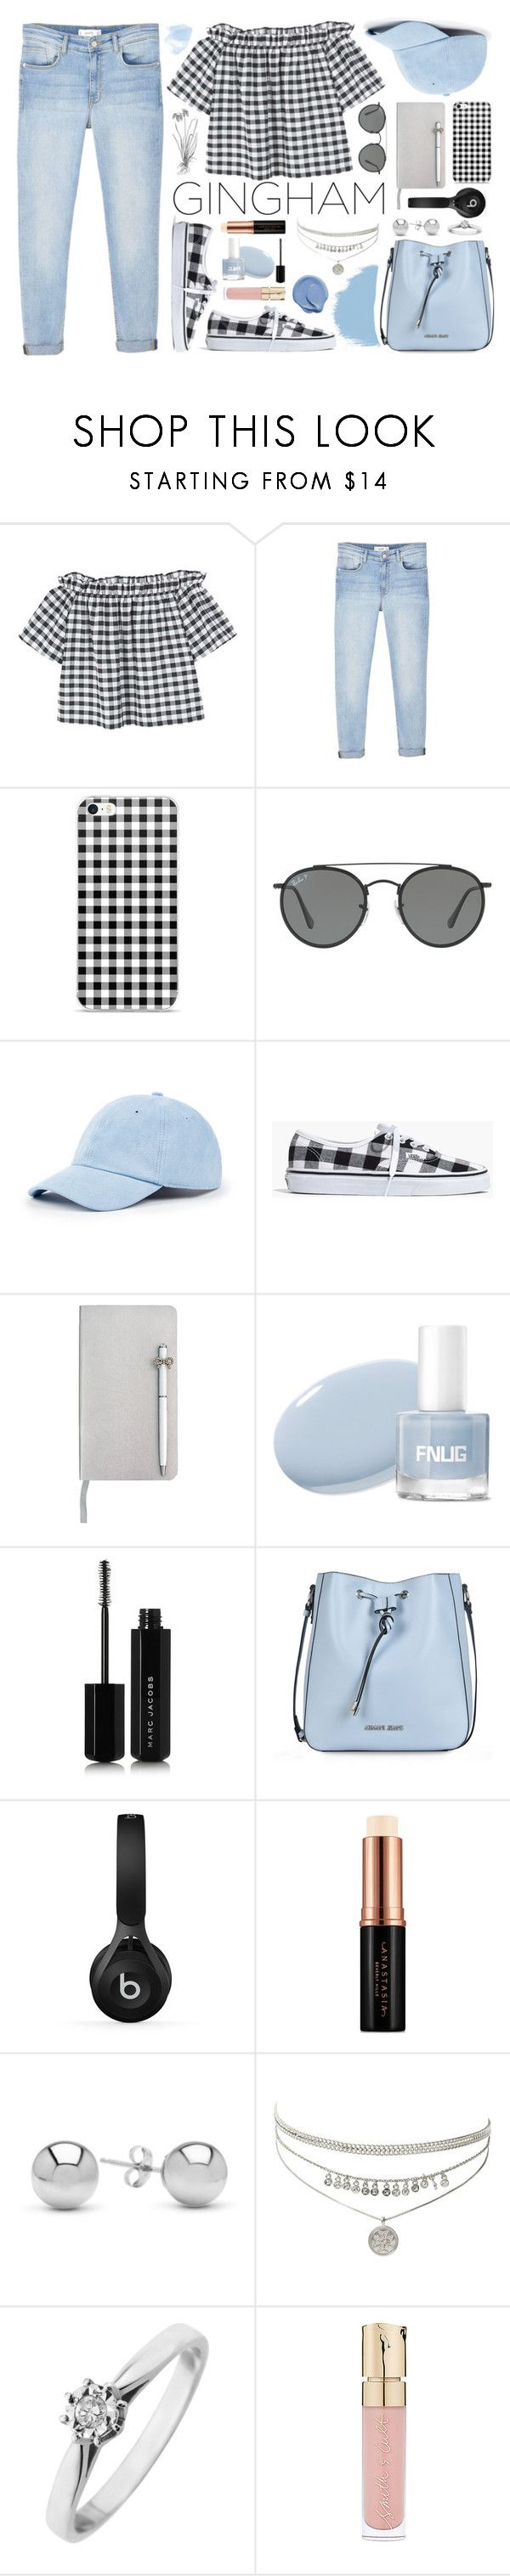 """""""Gingham Style"""" by aprilcastia ❤ liked on Polyvore featuring MANGO, Ray-Ban, Sole Society, Madewell, ICE London, Marc Jacobs, Armani Jeans, Beats by Dr. Dre, Anastasia Beverly Hills and Jewelonfire"""